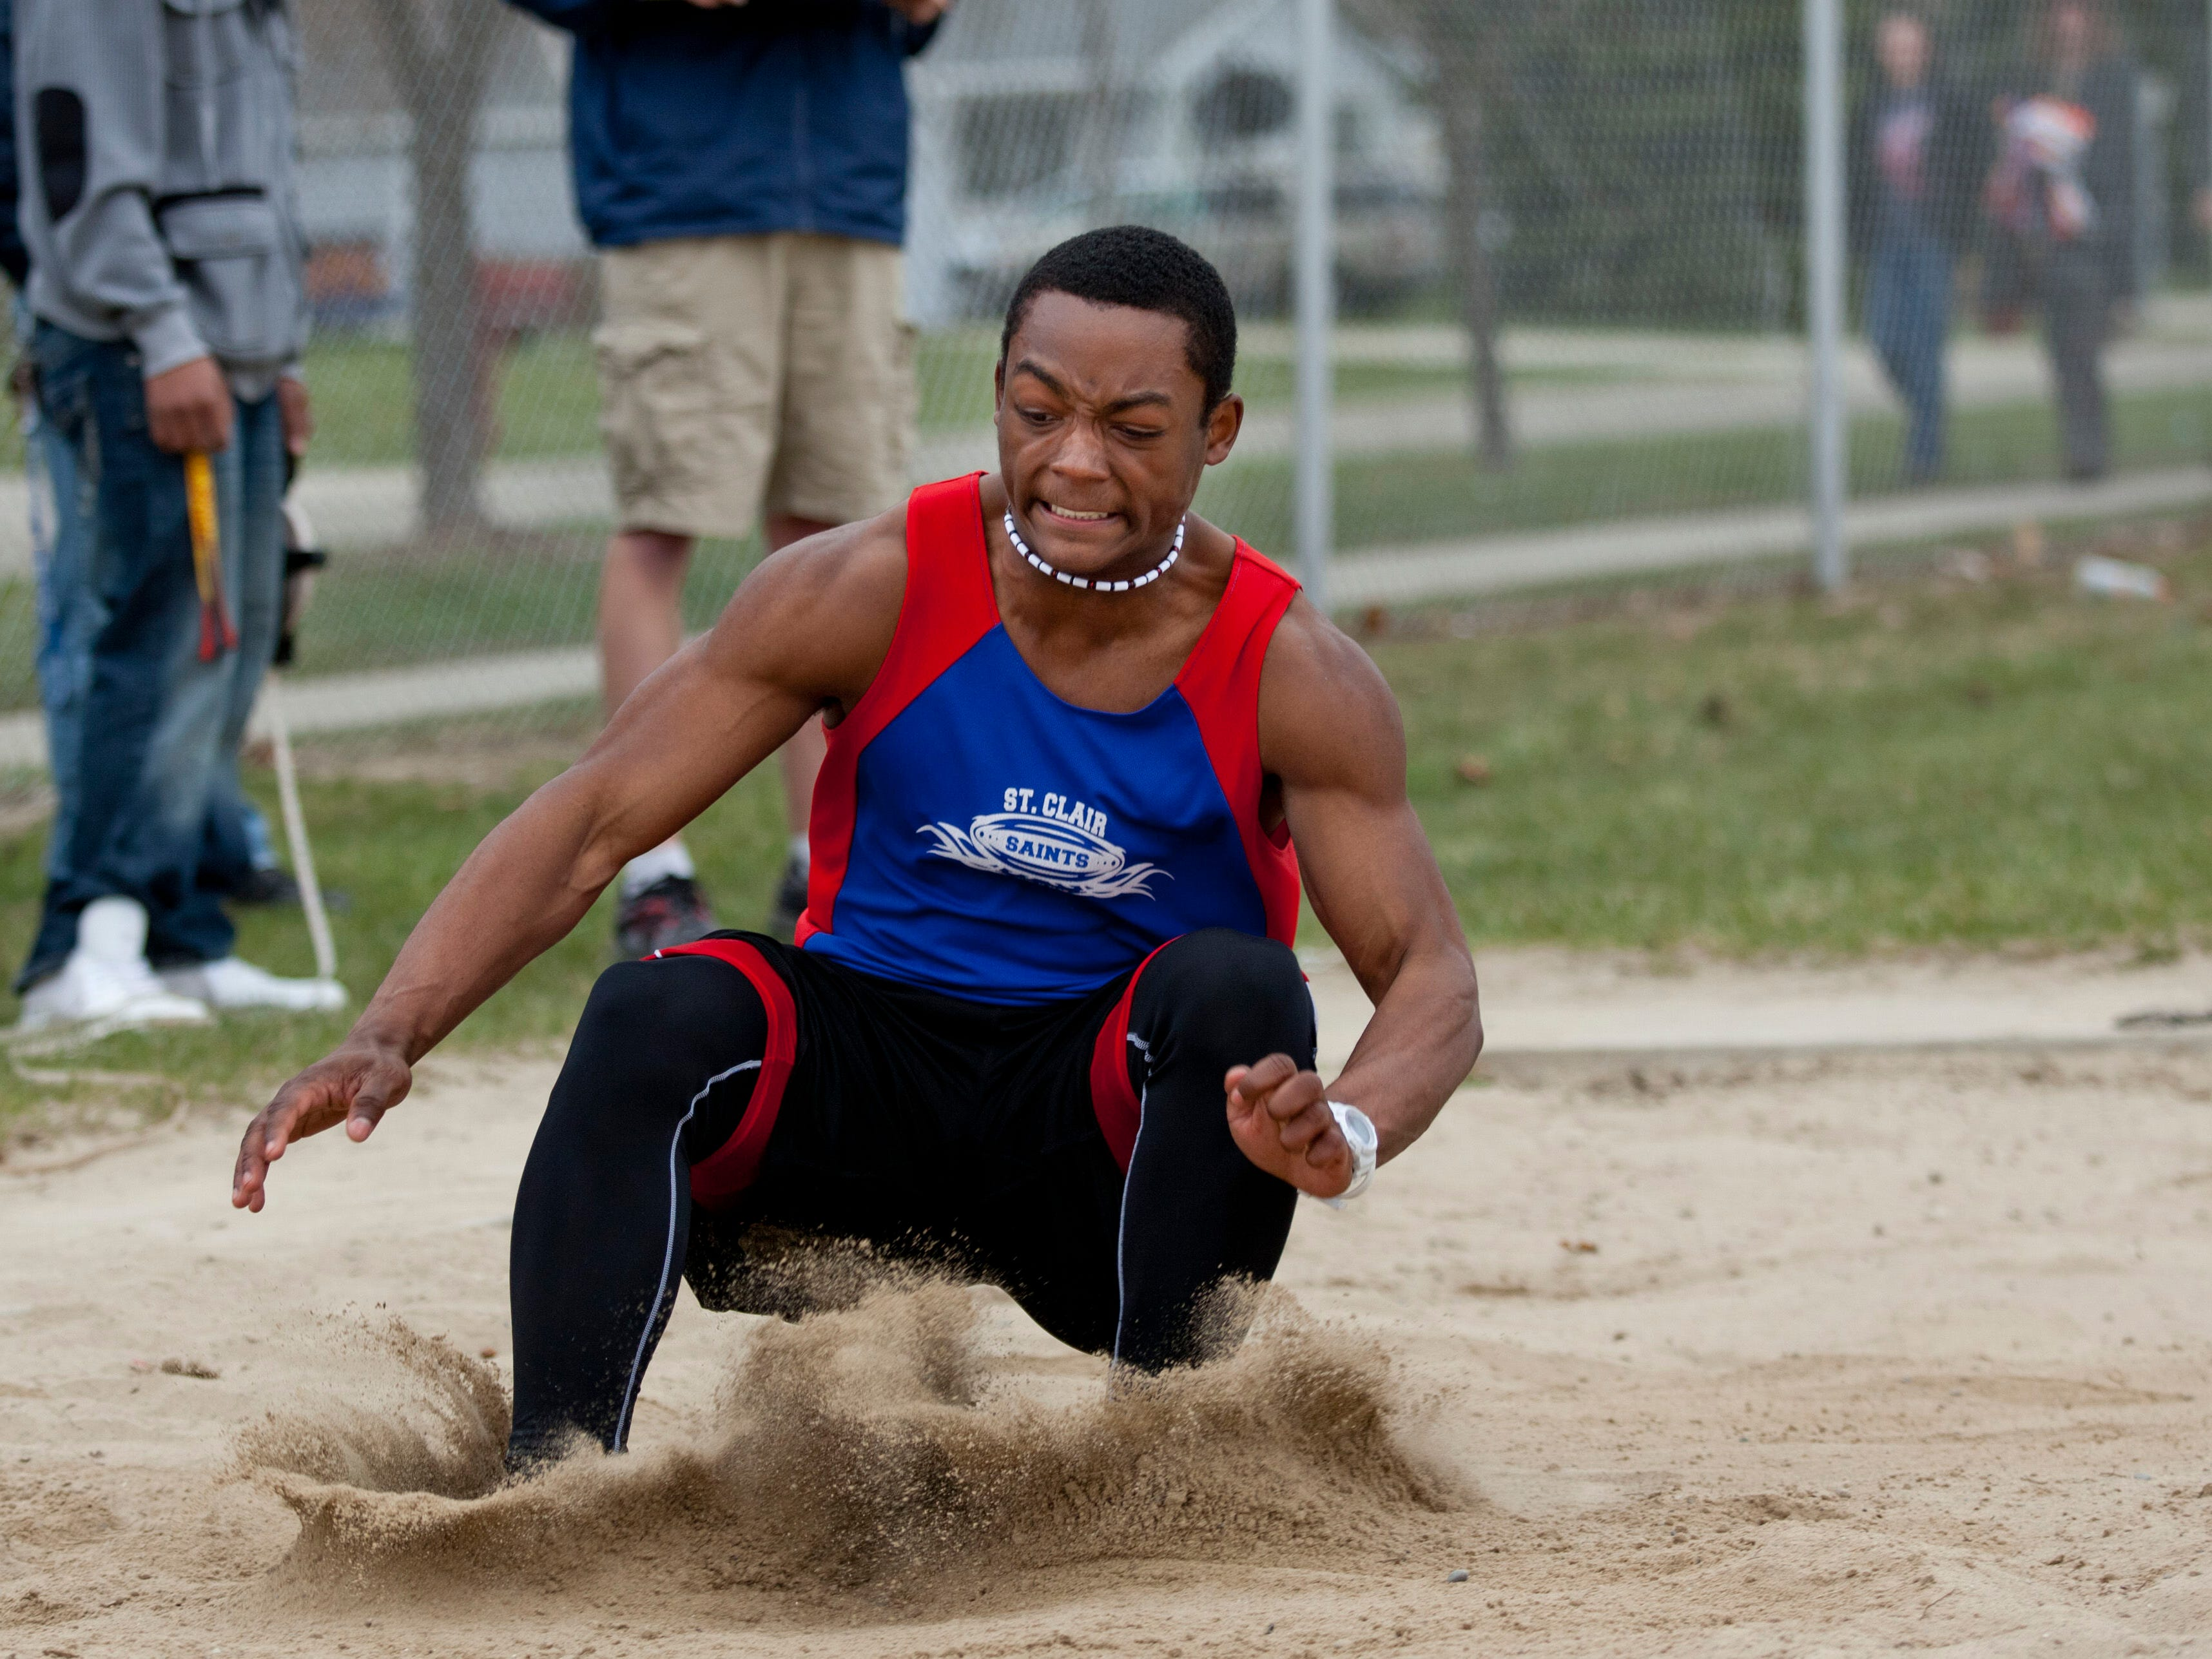 St. Clair sophomore Cameron Williams competes in the long jump during a track meet Thursday, April 30, 2015 at Marysville High School.